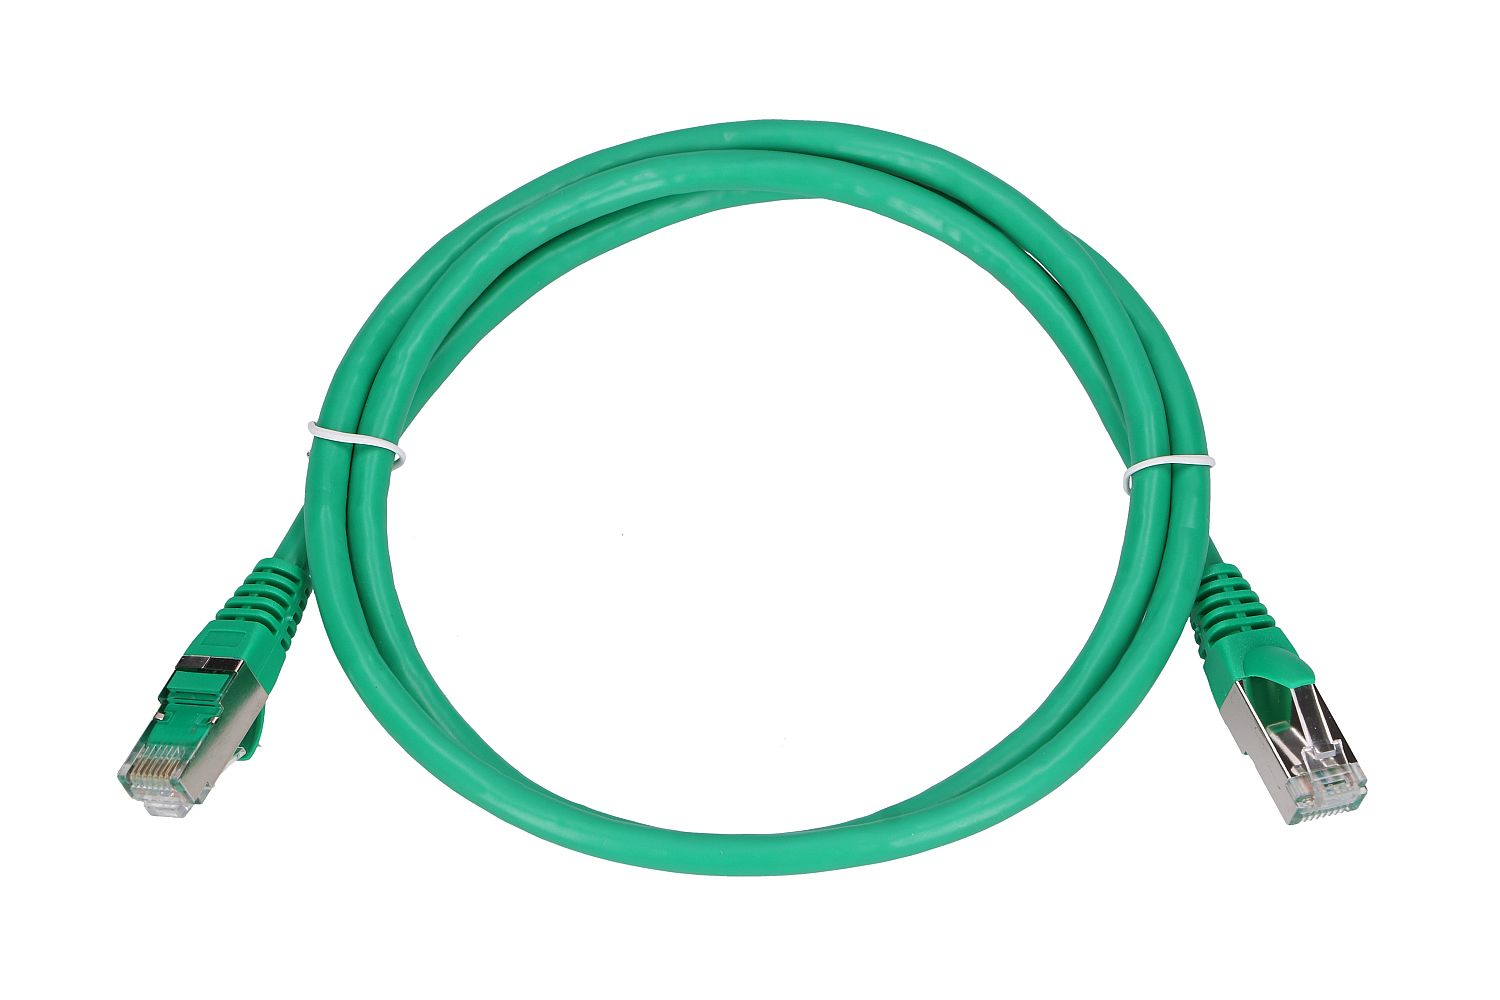 Extralink Kat.6 FTP 1m LAN Patchcord Copper twisted pair, 1Gbps Green